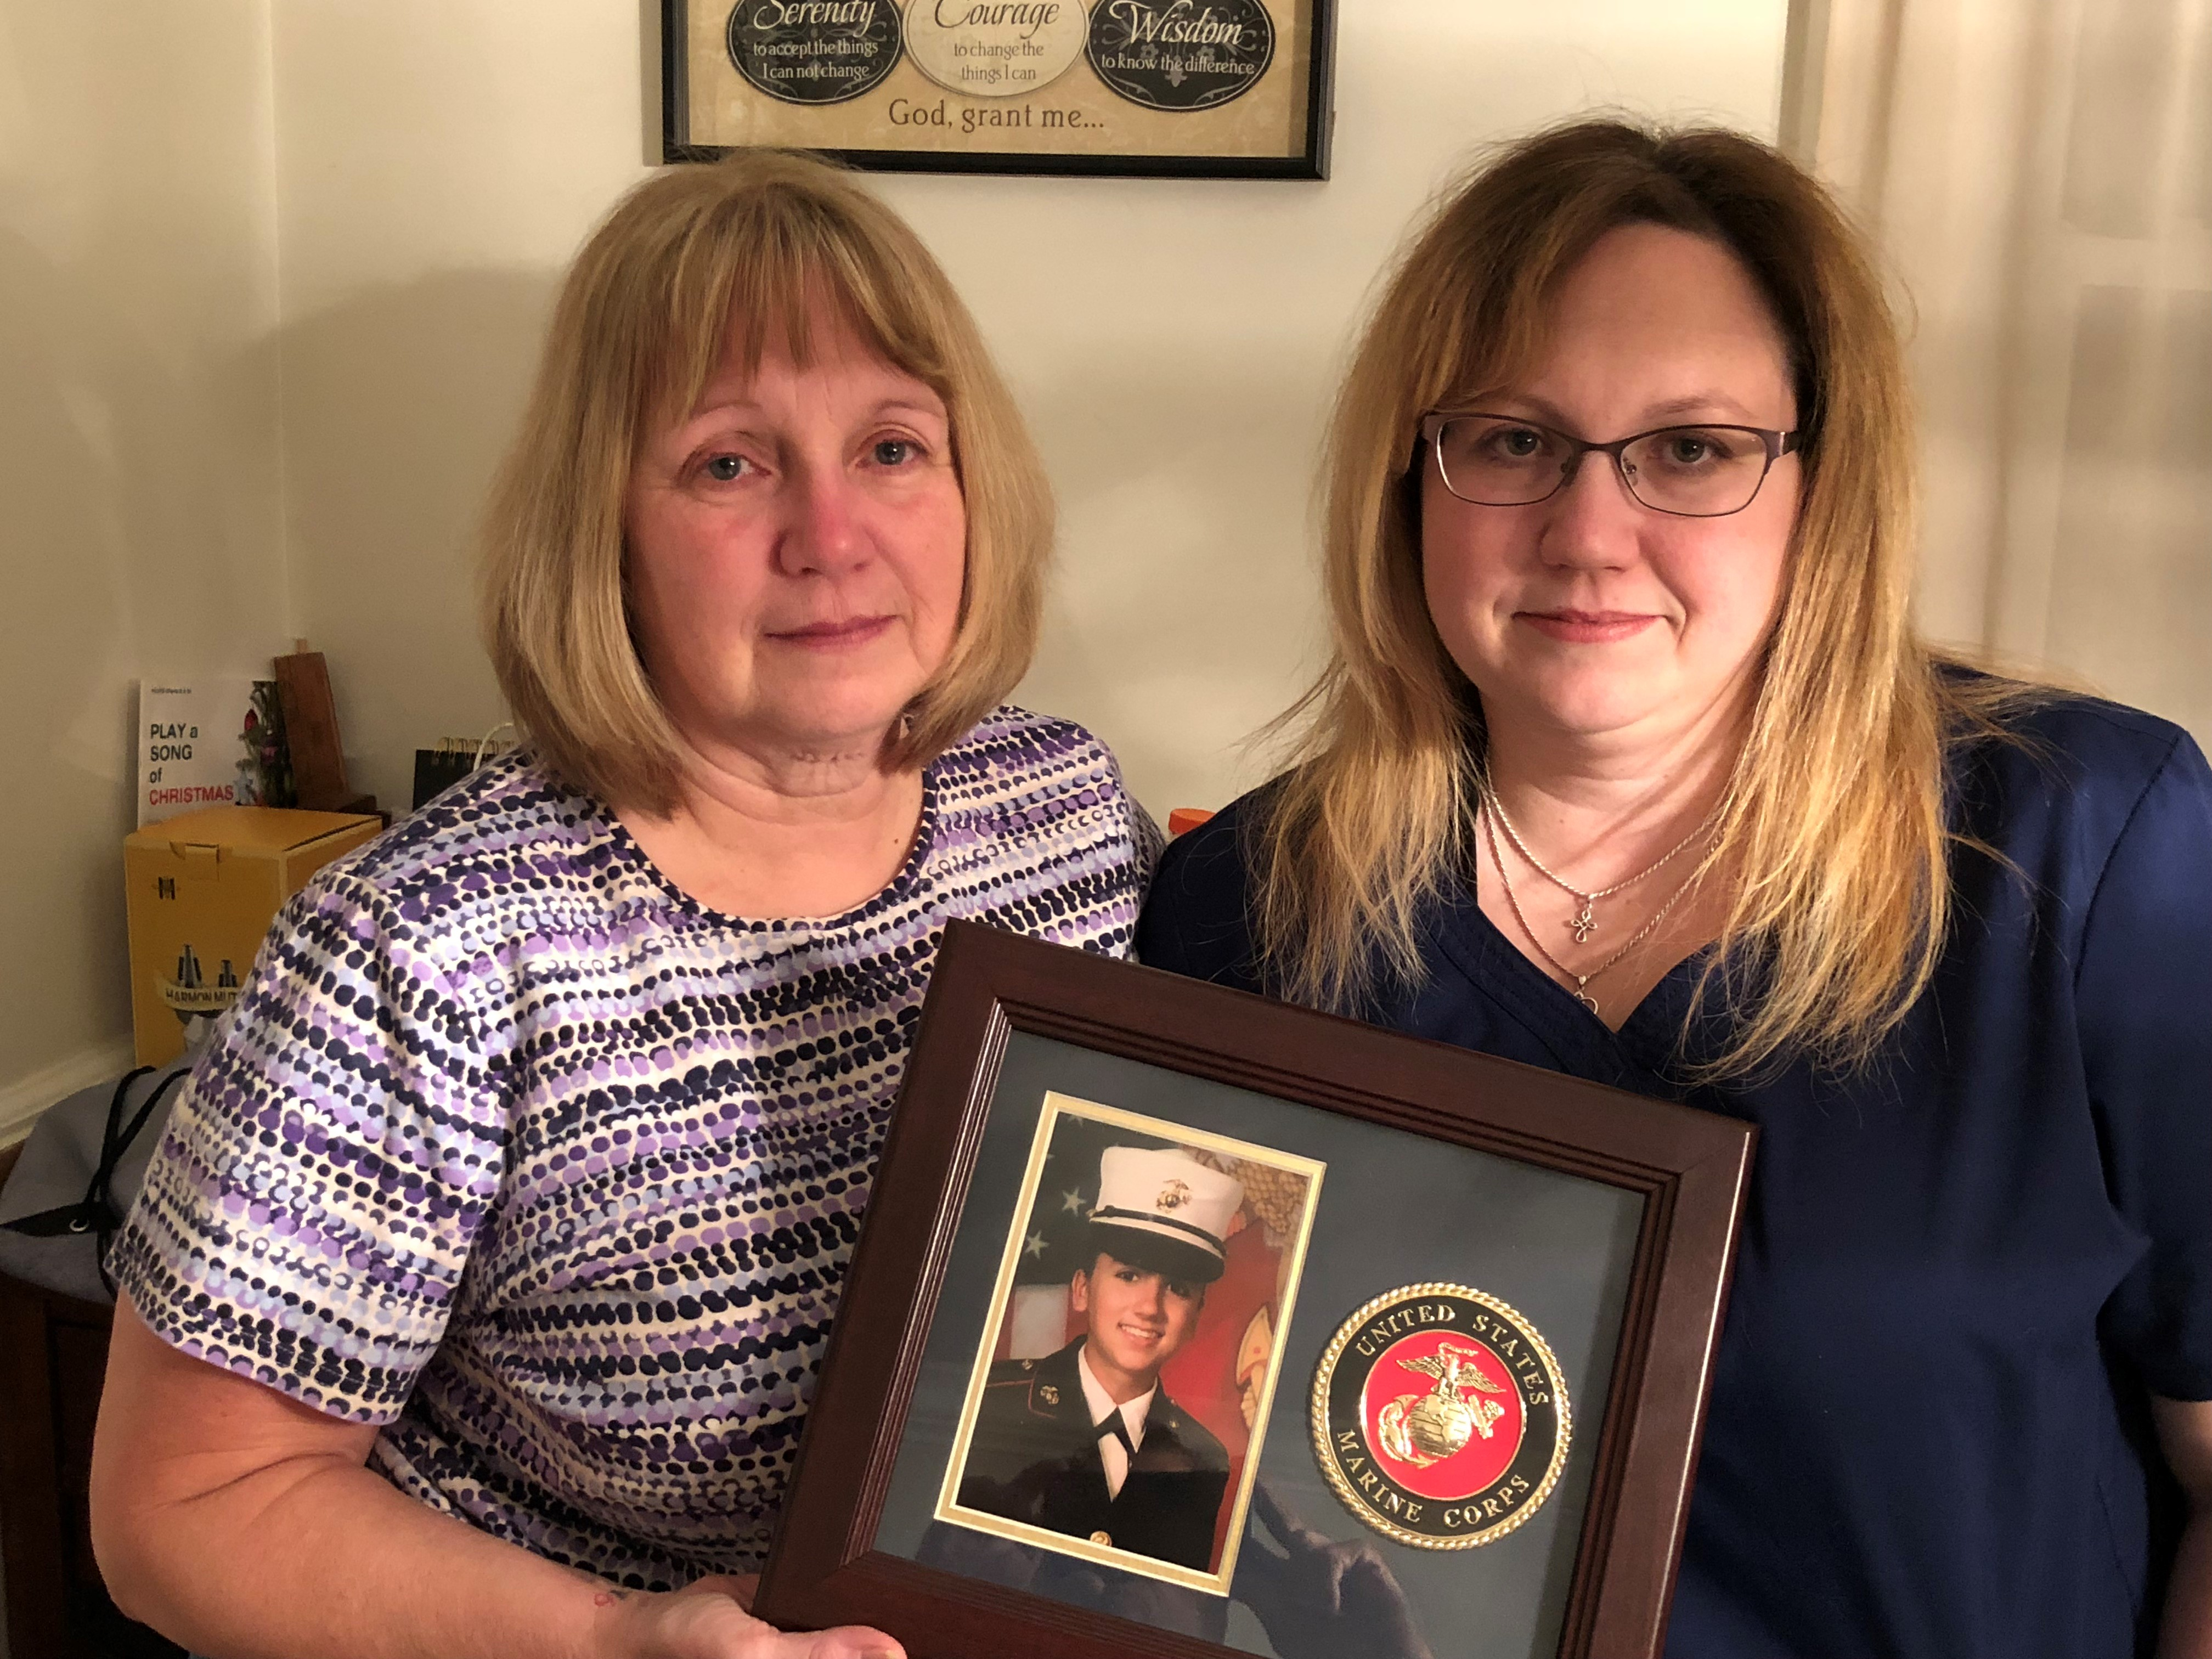 Caption: Deana Martorella Orellana's mother, Laurel Martorella (left), and Orellana's sister, Robin Jewell, hold her Marine Corps photo. Orellana killed herself a year after leaving the Marines. She had agreed to undergo counseling the day she died., Credit: Jay Price/American Homefront